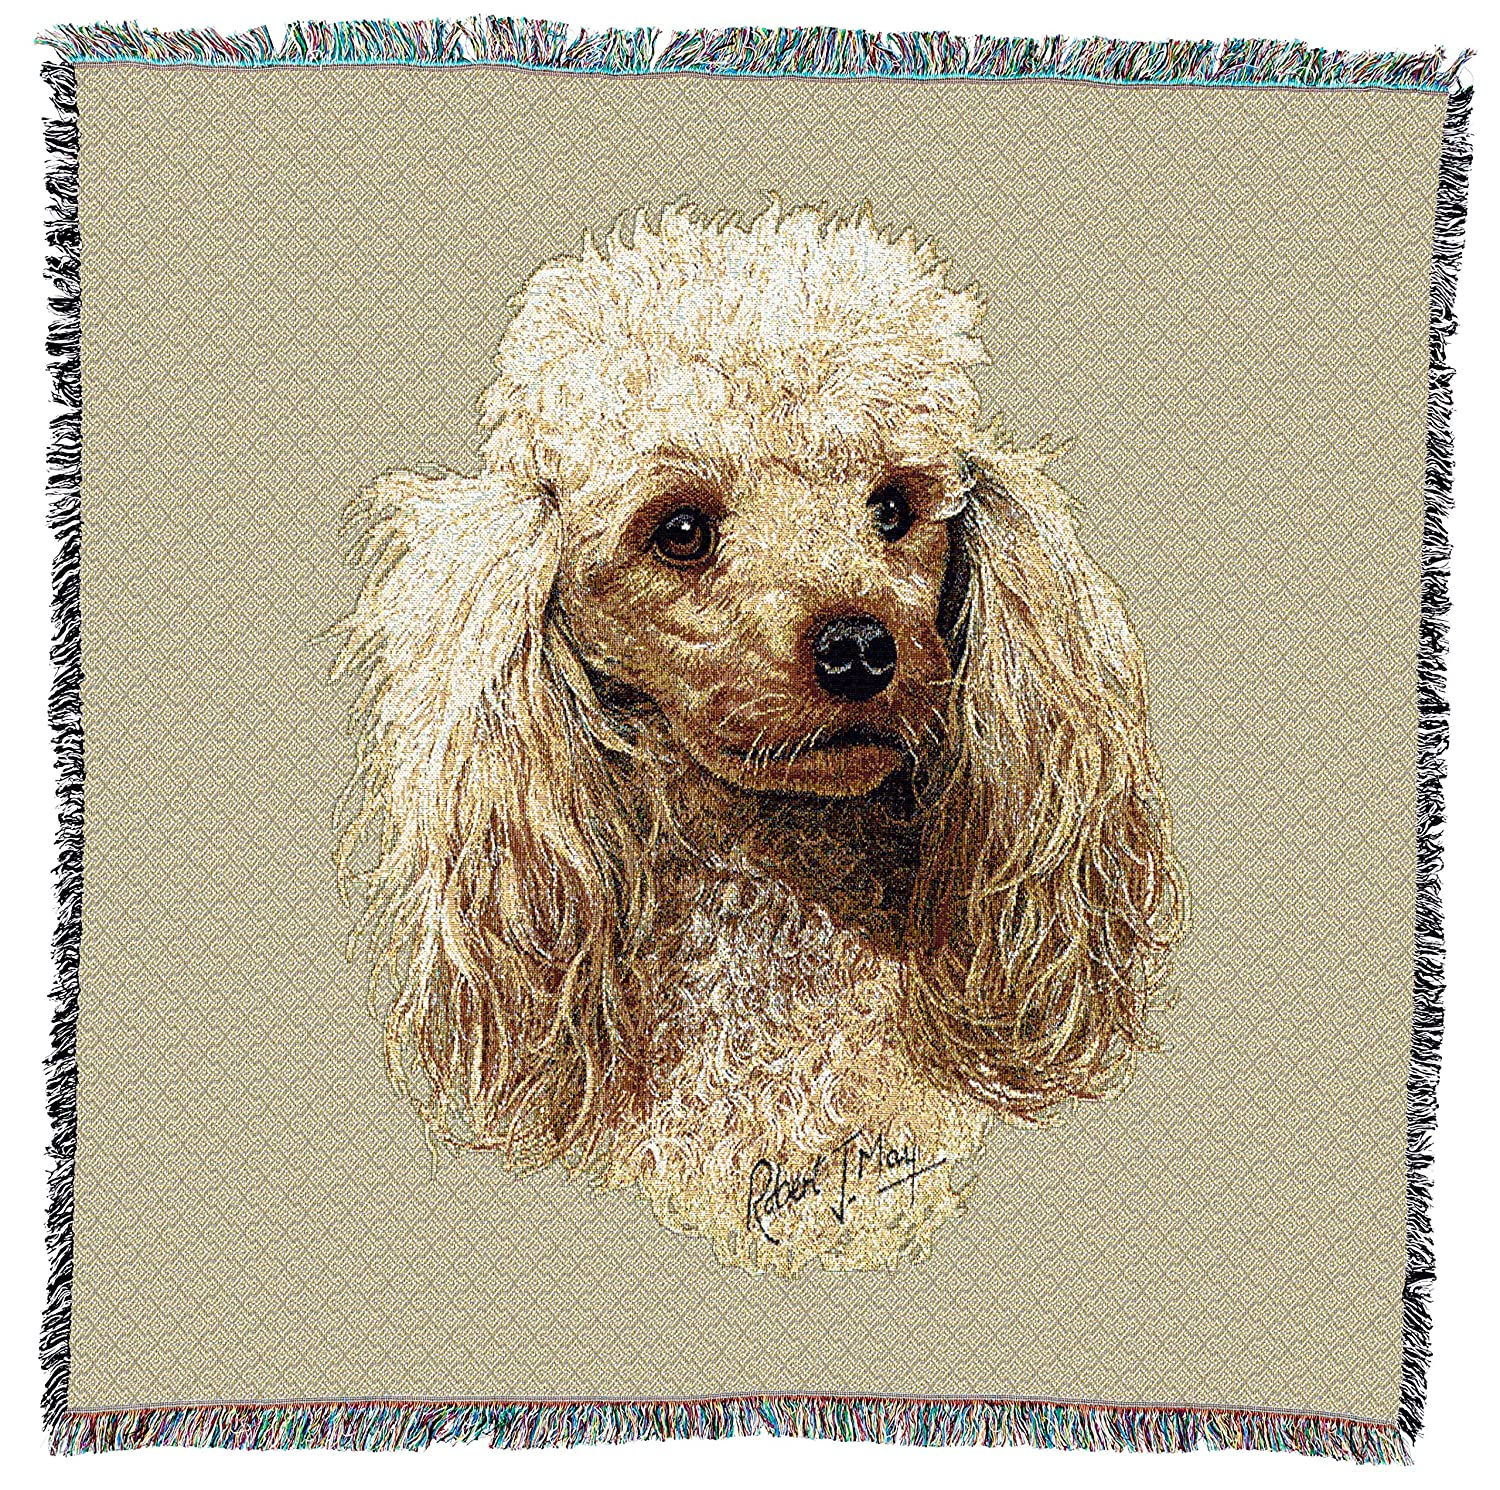 Old English Sheepdog Woven Blanket with Fringe Cotton USA 54x54 1149-LS Pure Country Weavers